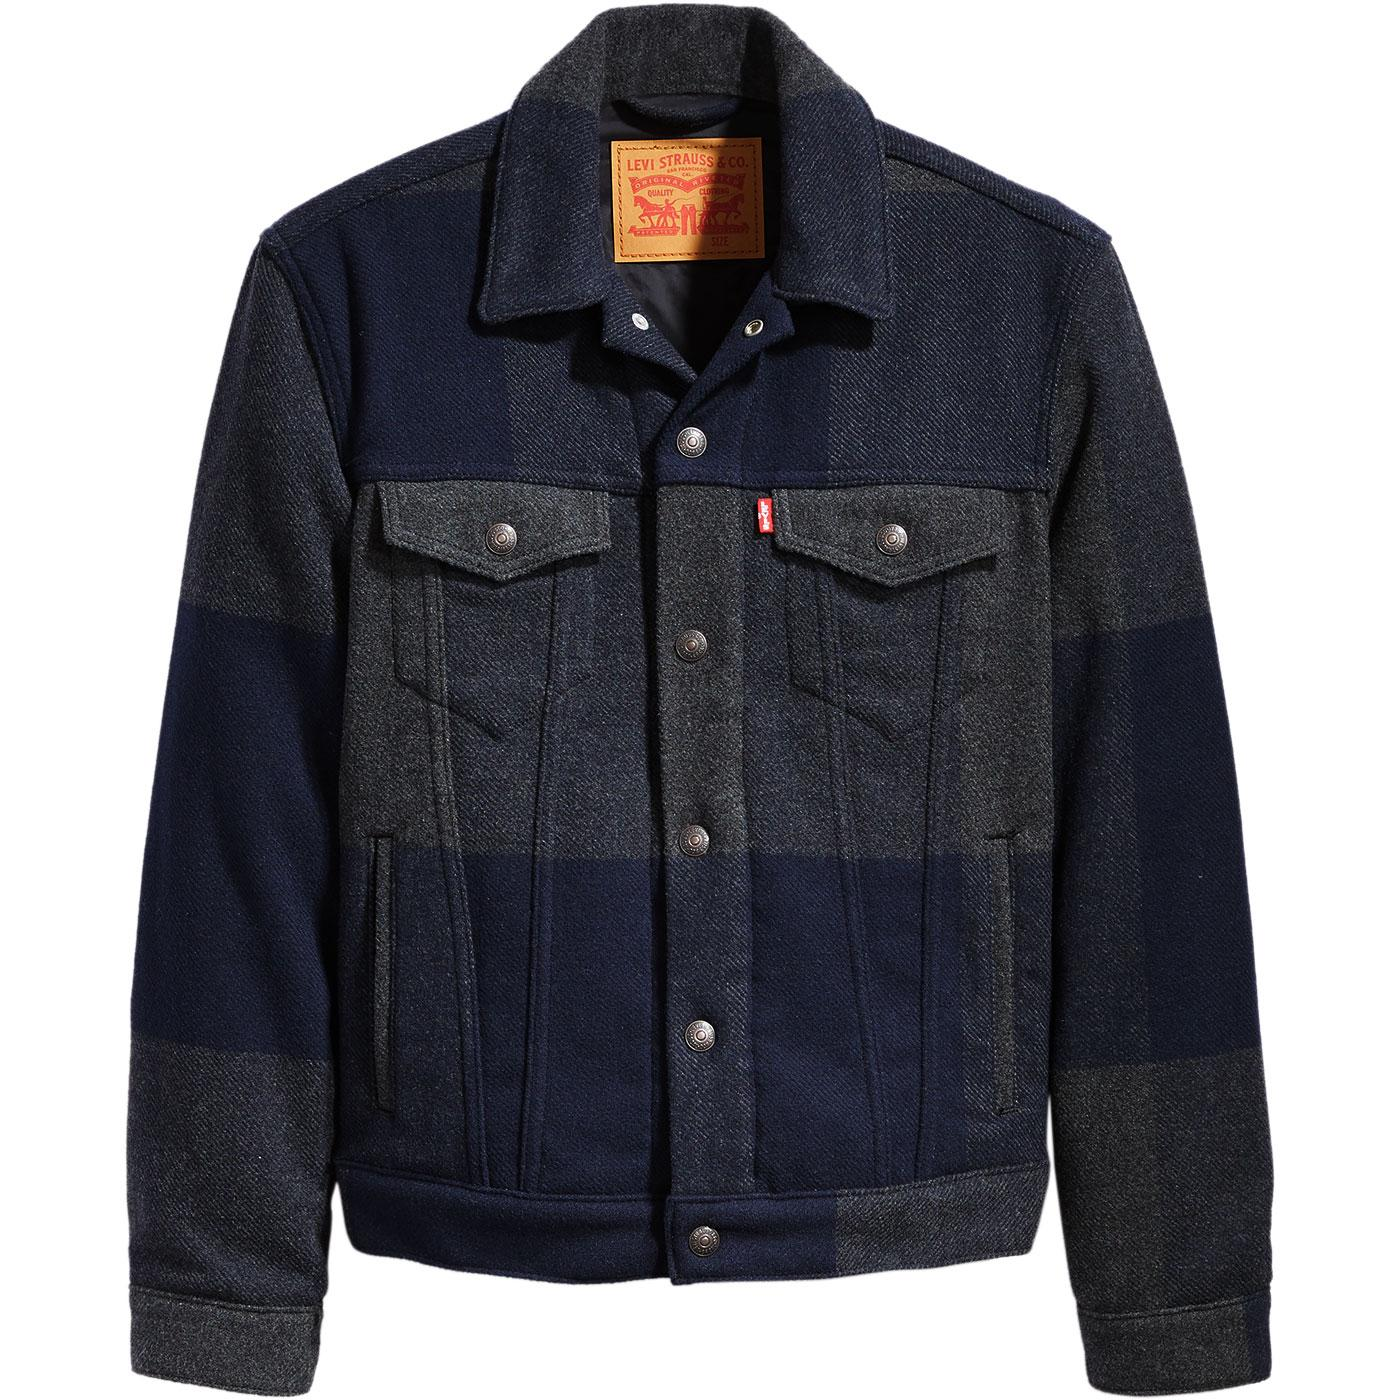 LEVI'S Retro Mod Wool Check Trucker Jacket GELADA